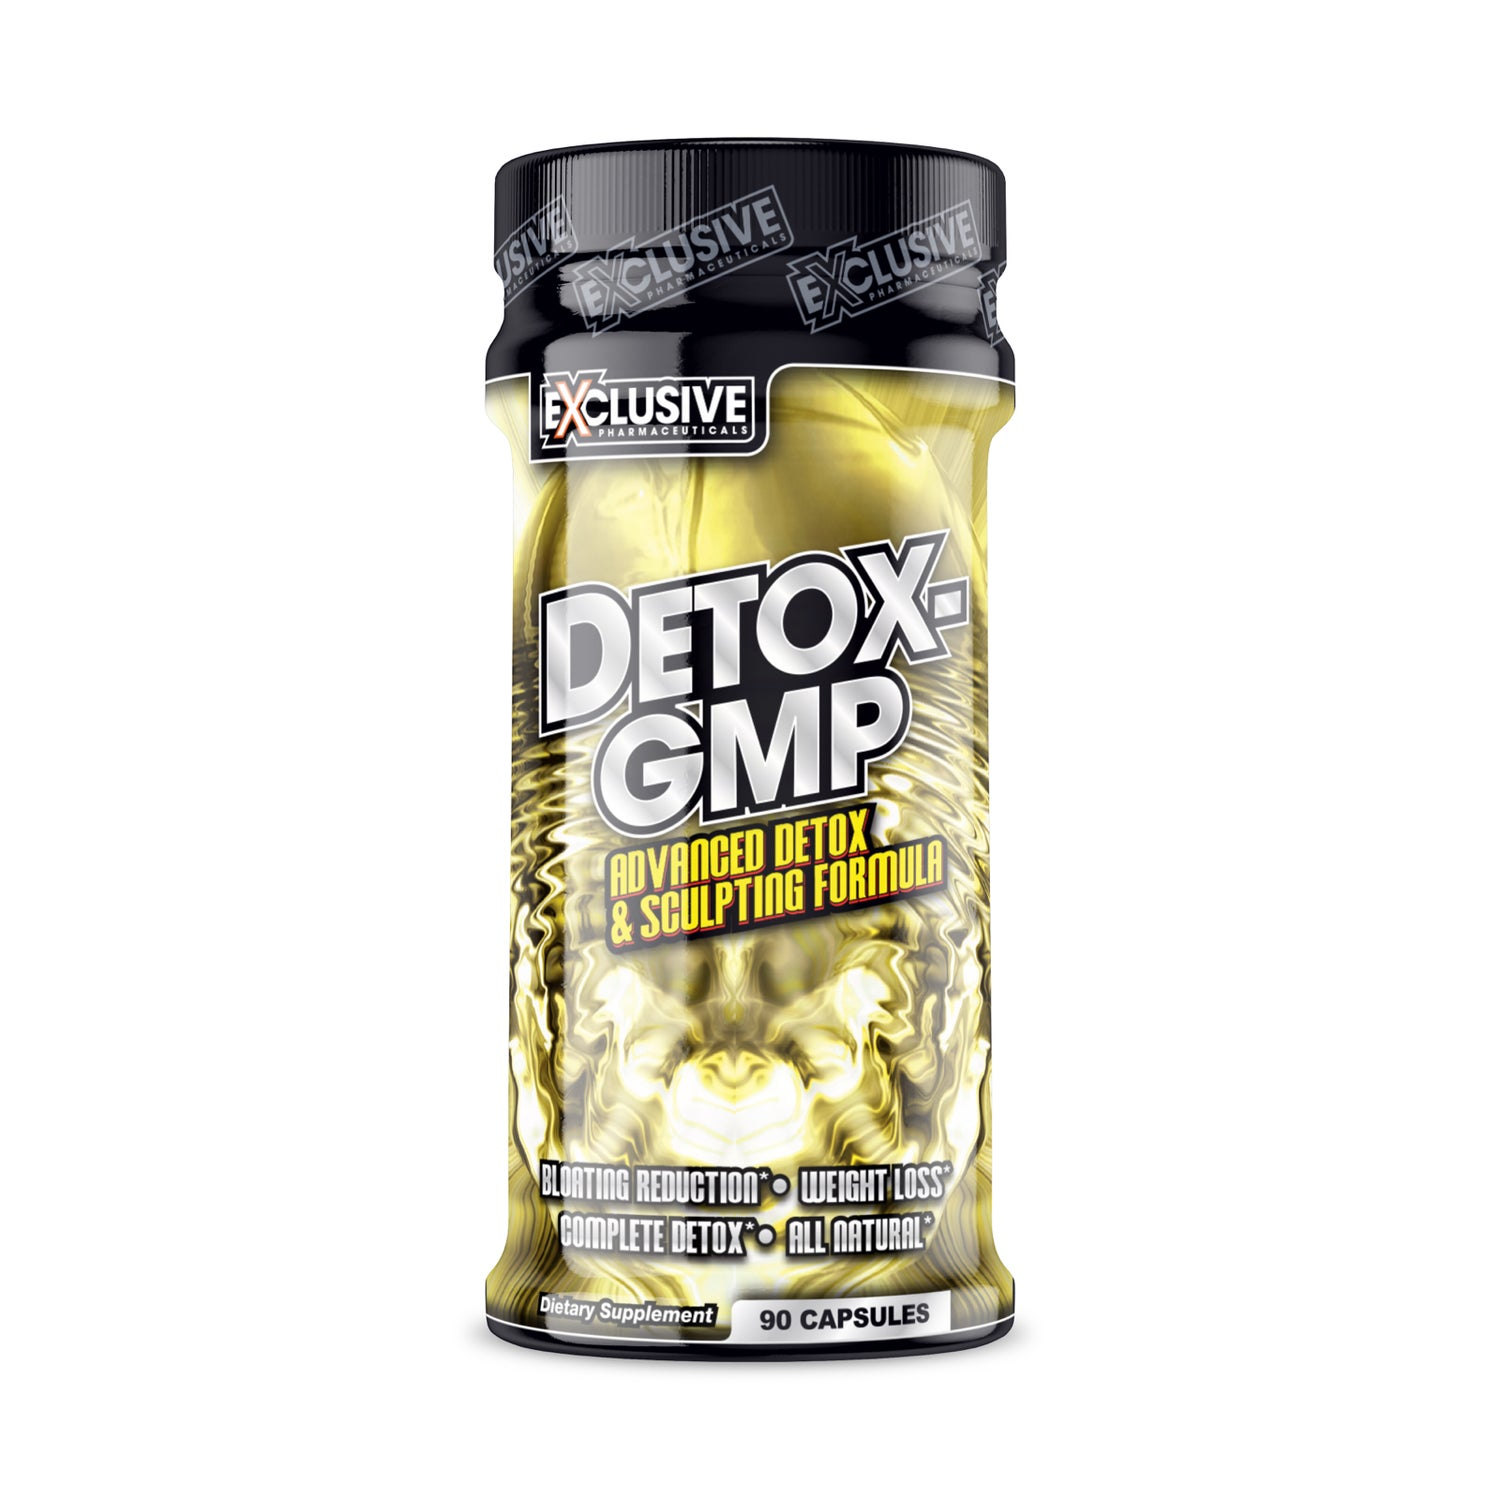 Image of Detox-GMP